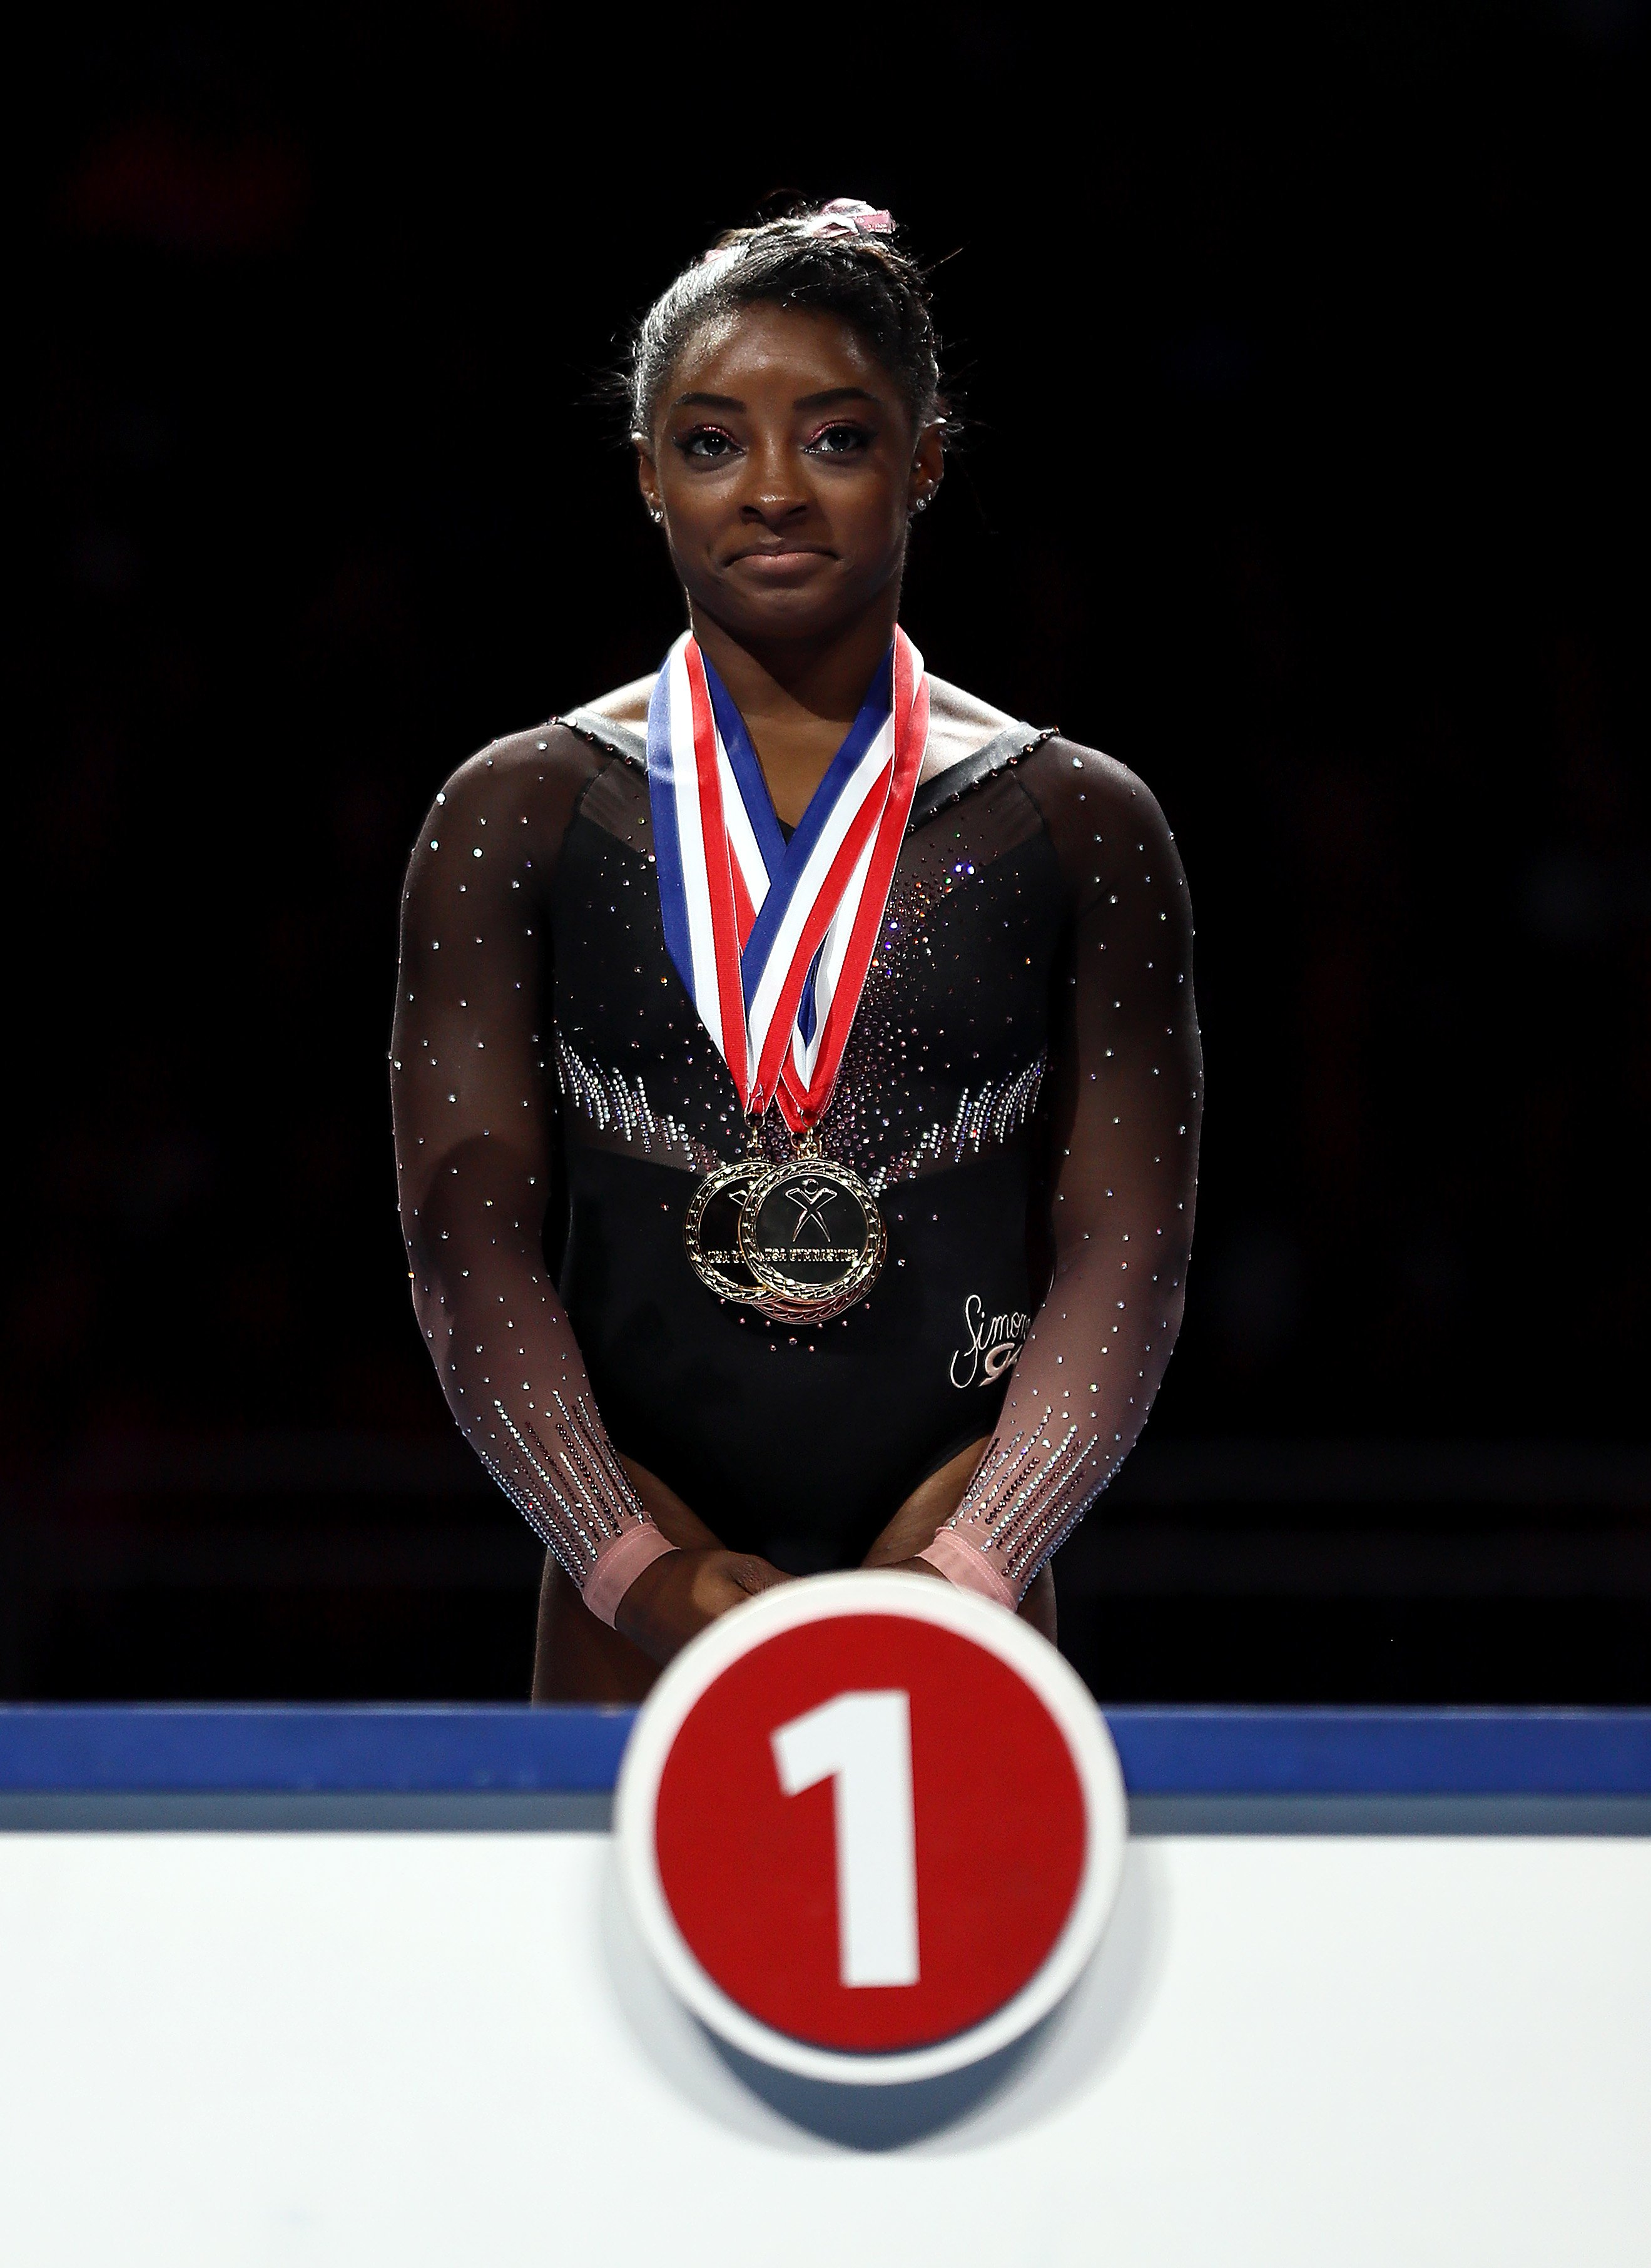 Simone Biles on the podium after accepting her gold medal during the Women's Senior competition at the 2019 US Gymnastics Championships on August 11, 2019. | Photo: Getty Images